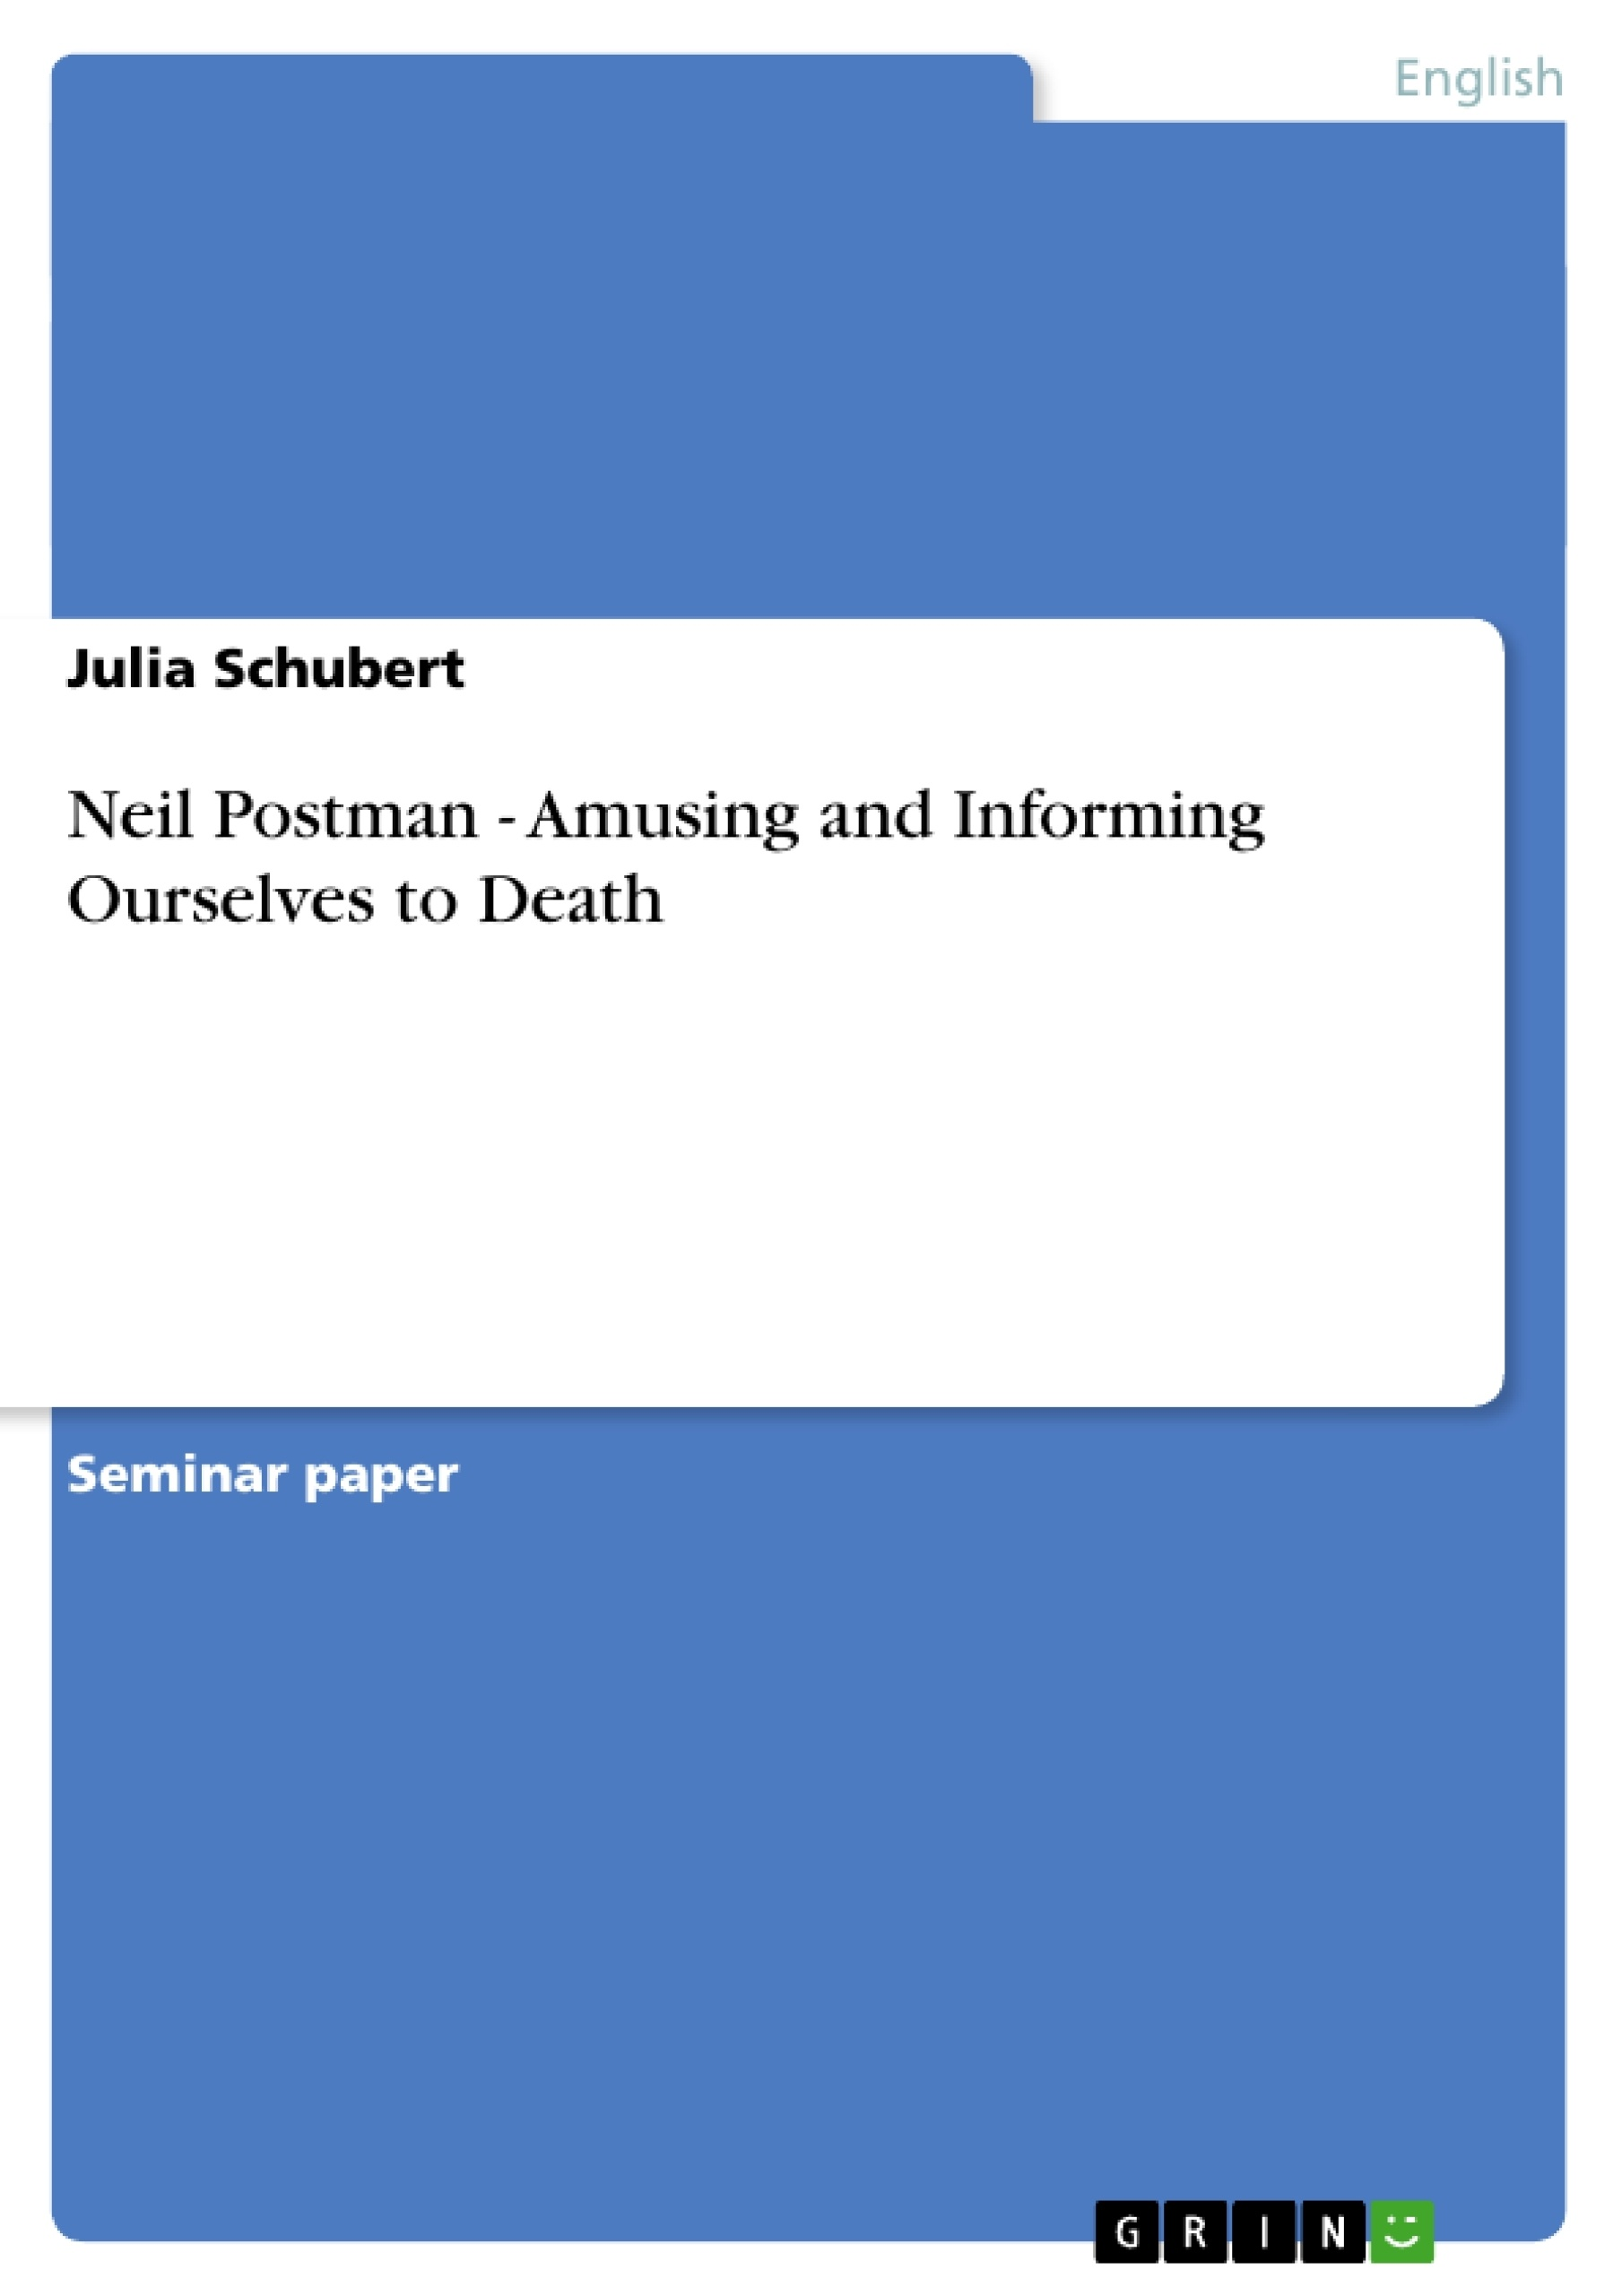 Essay on amusing ourselves to death ch 1